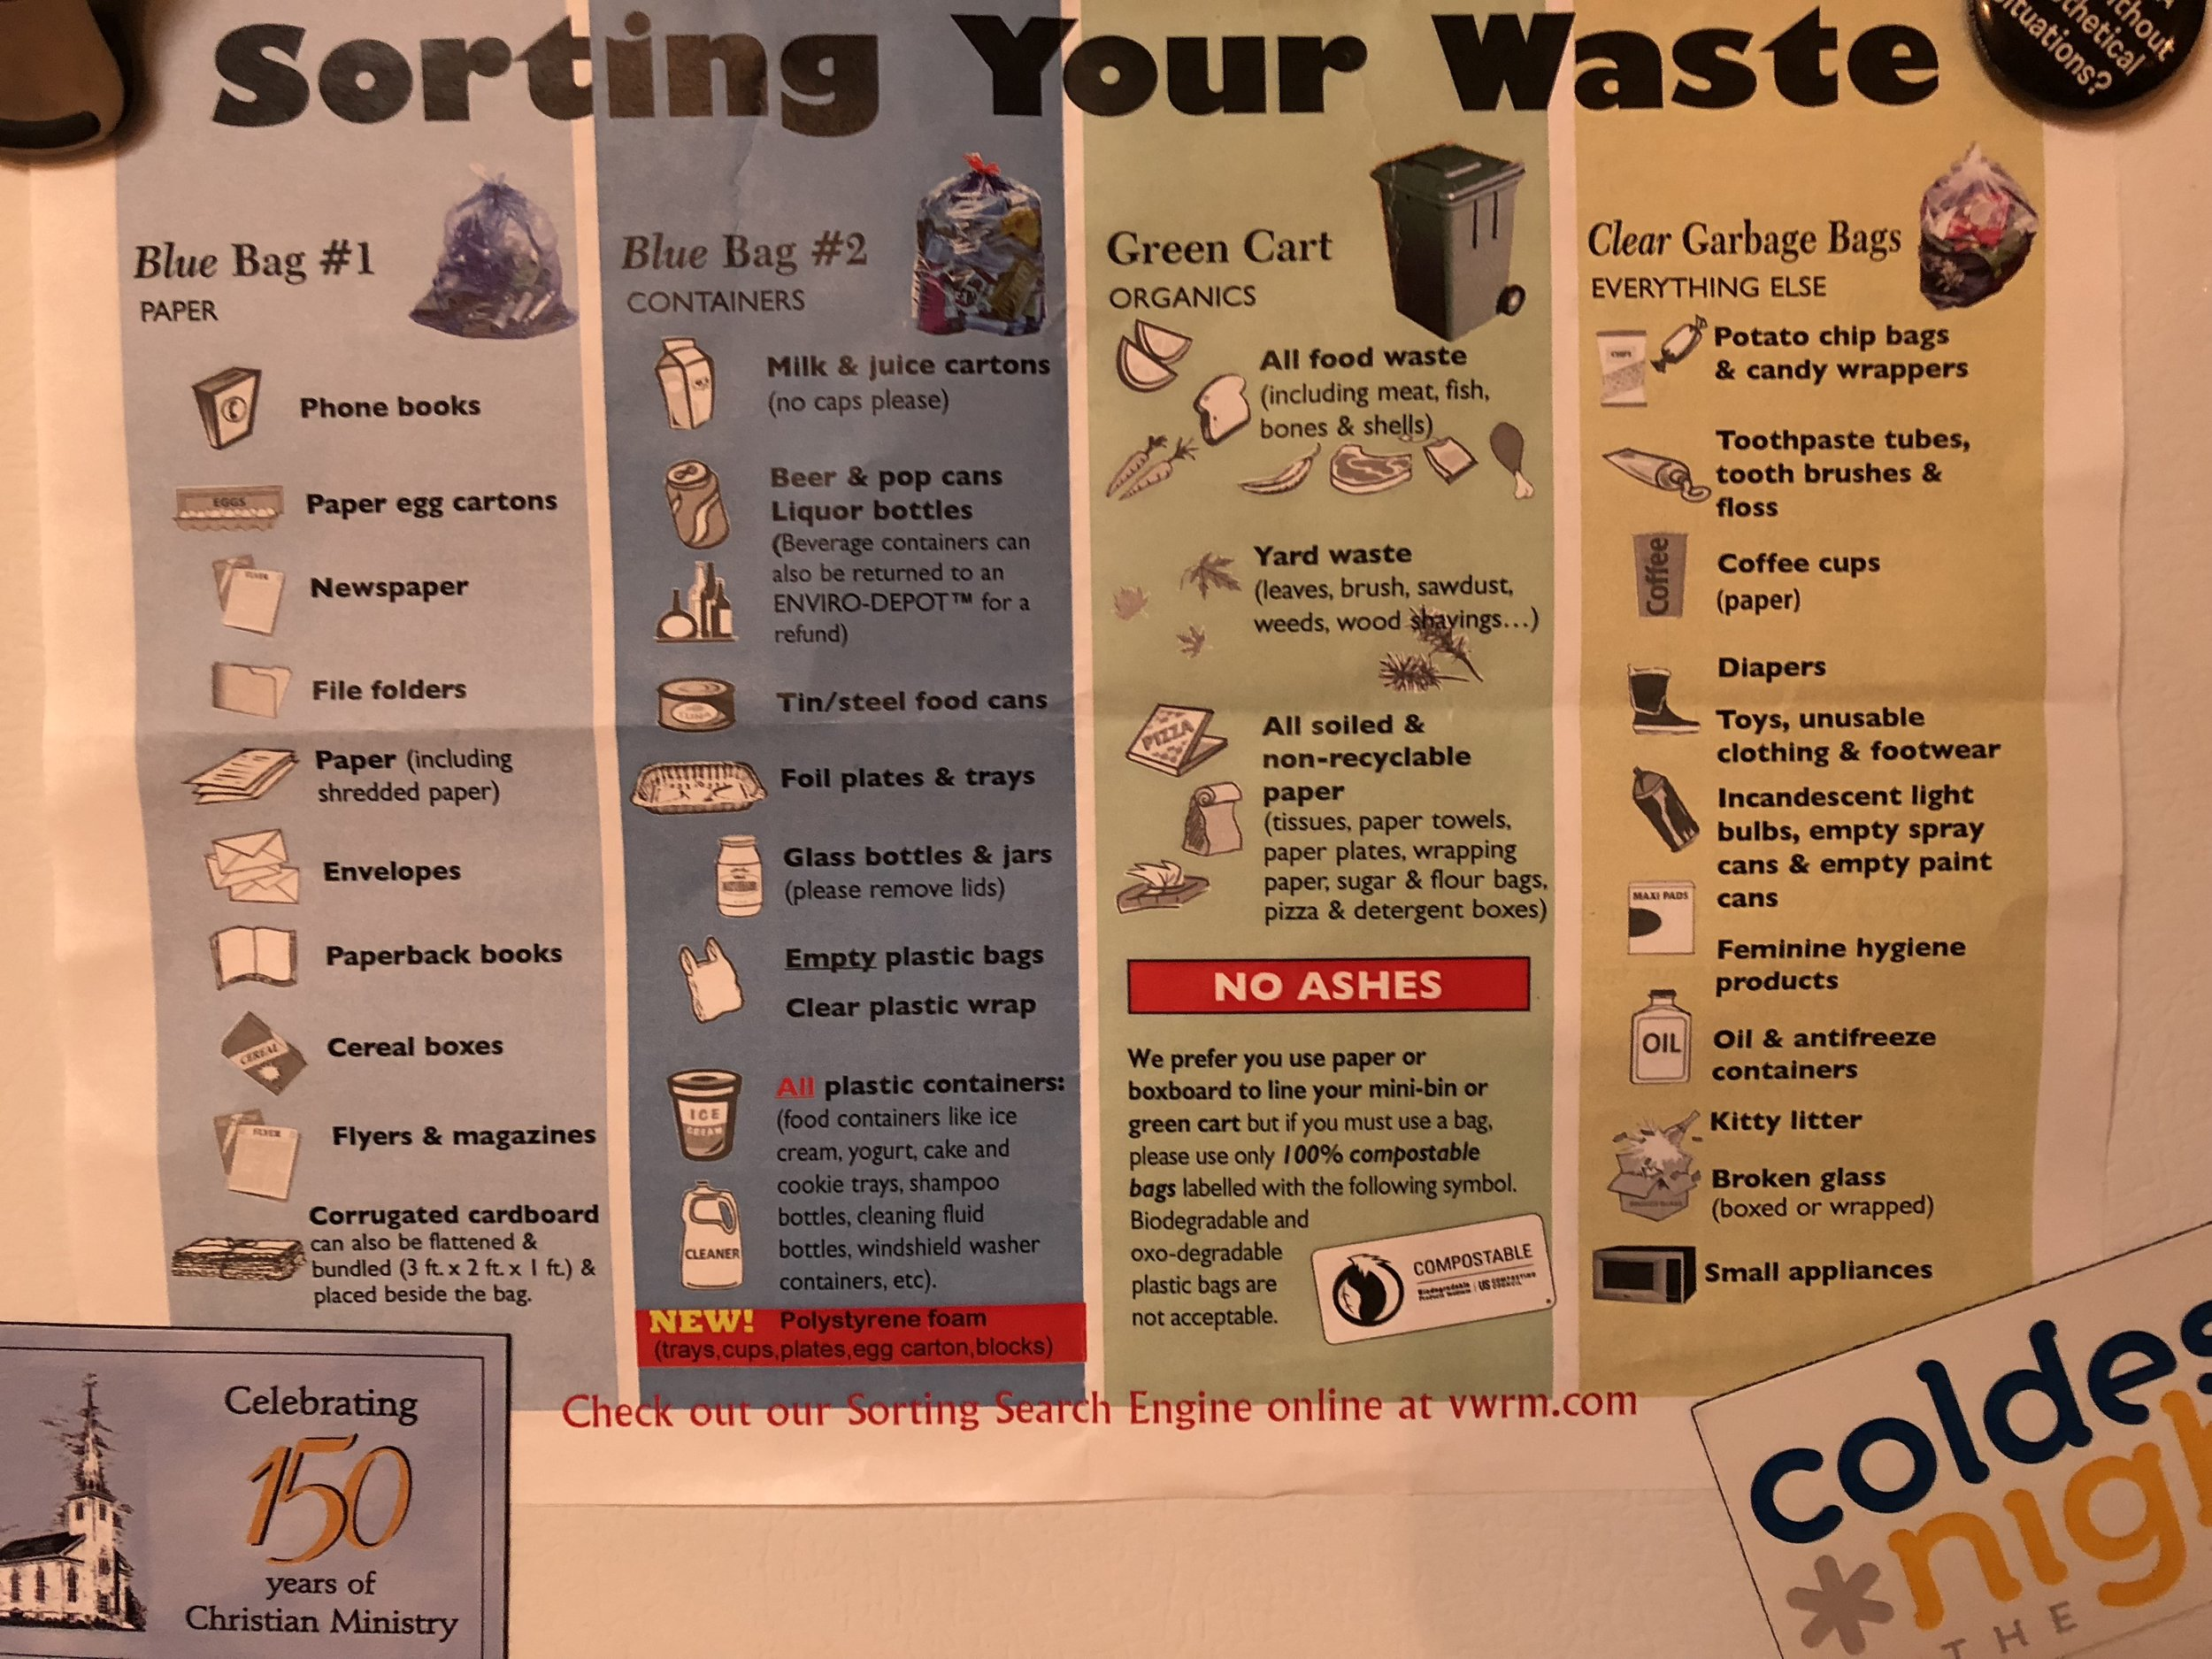 Front and center on the fridge - recycling instructions